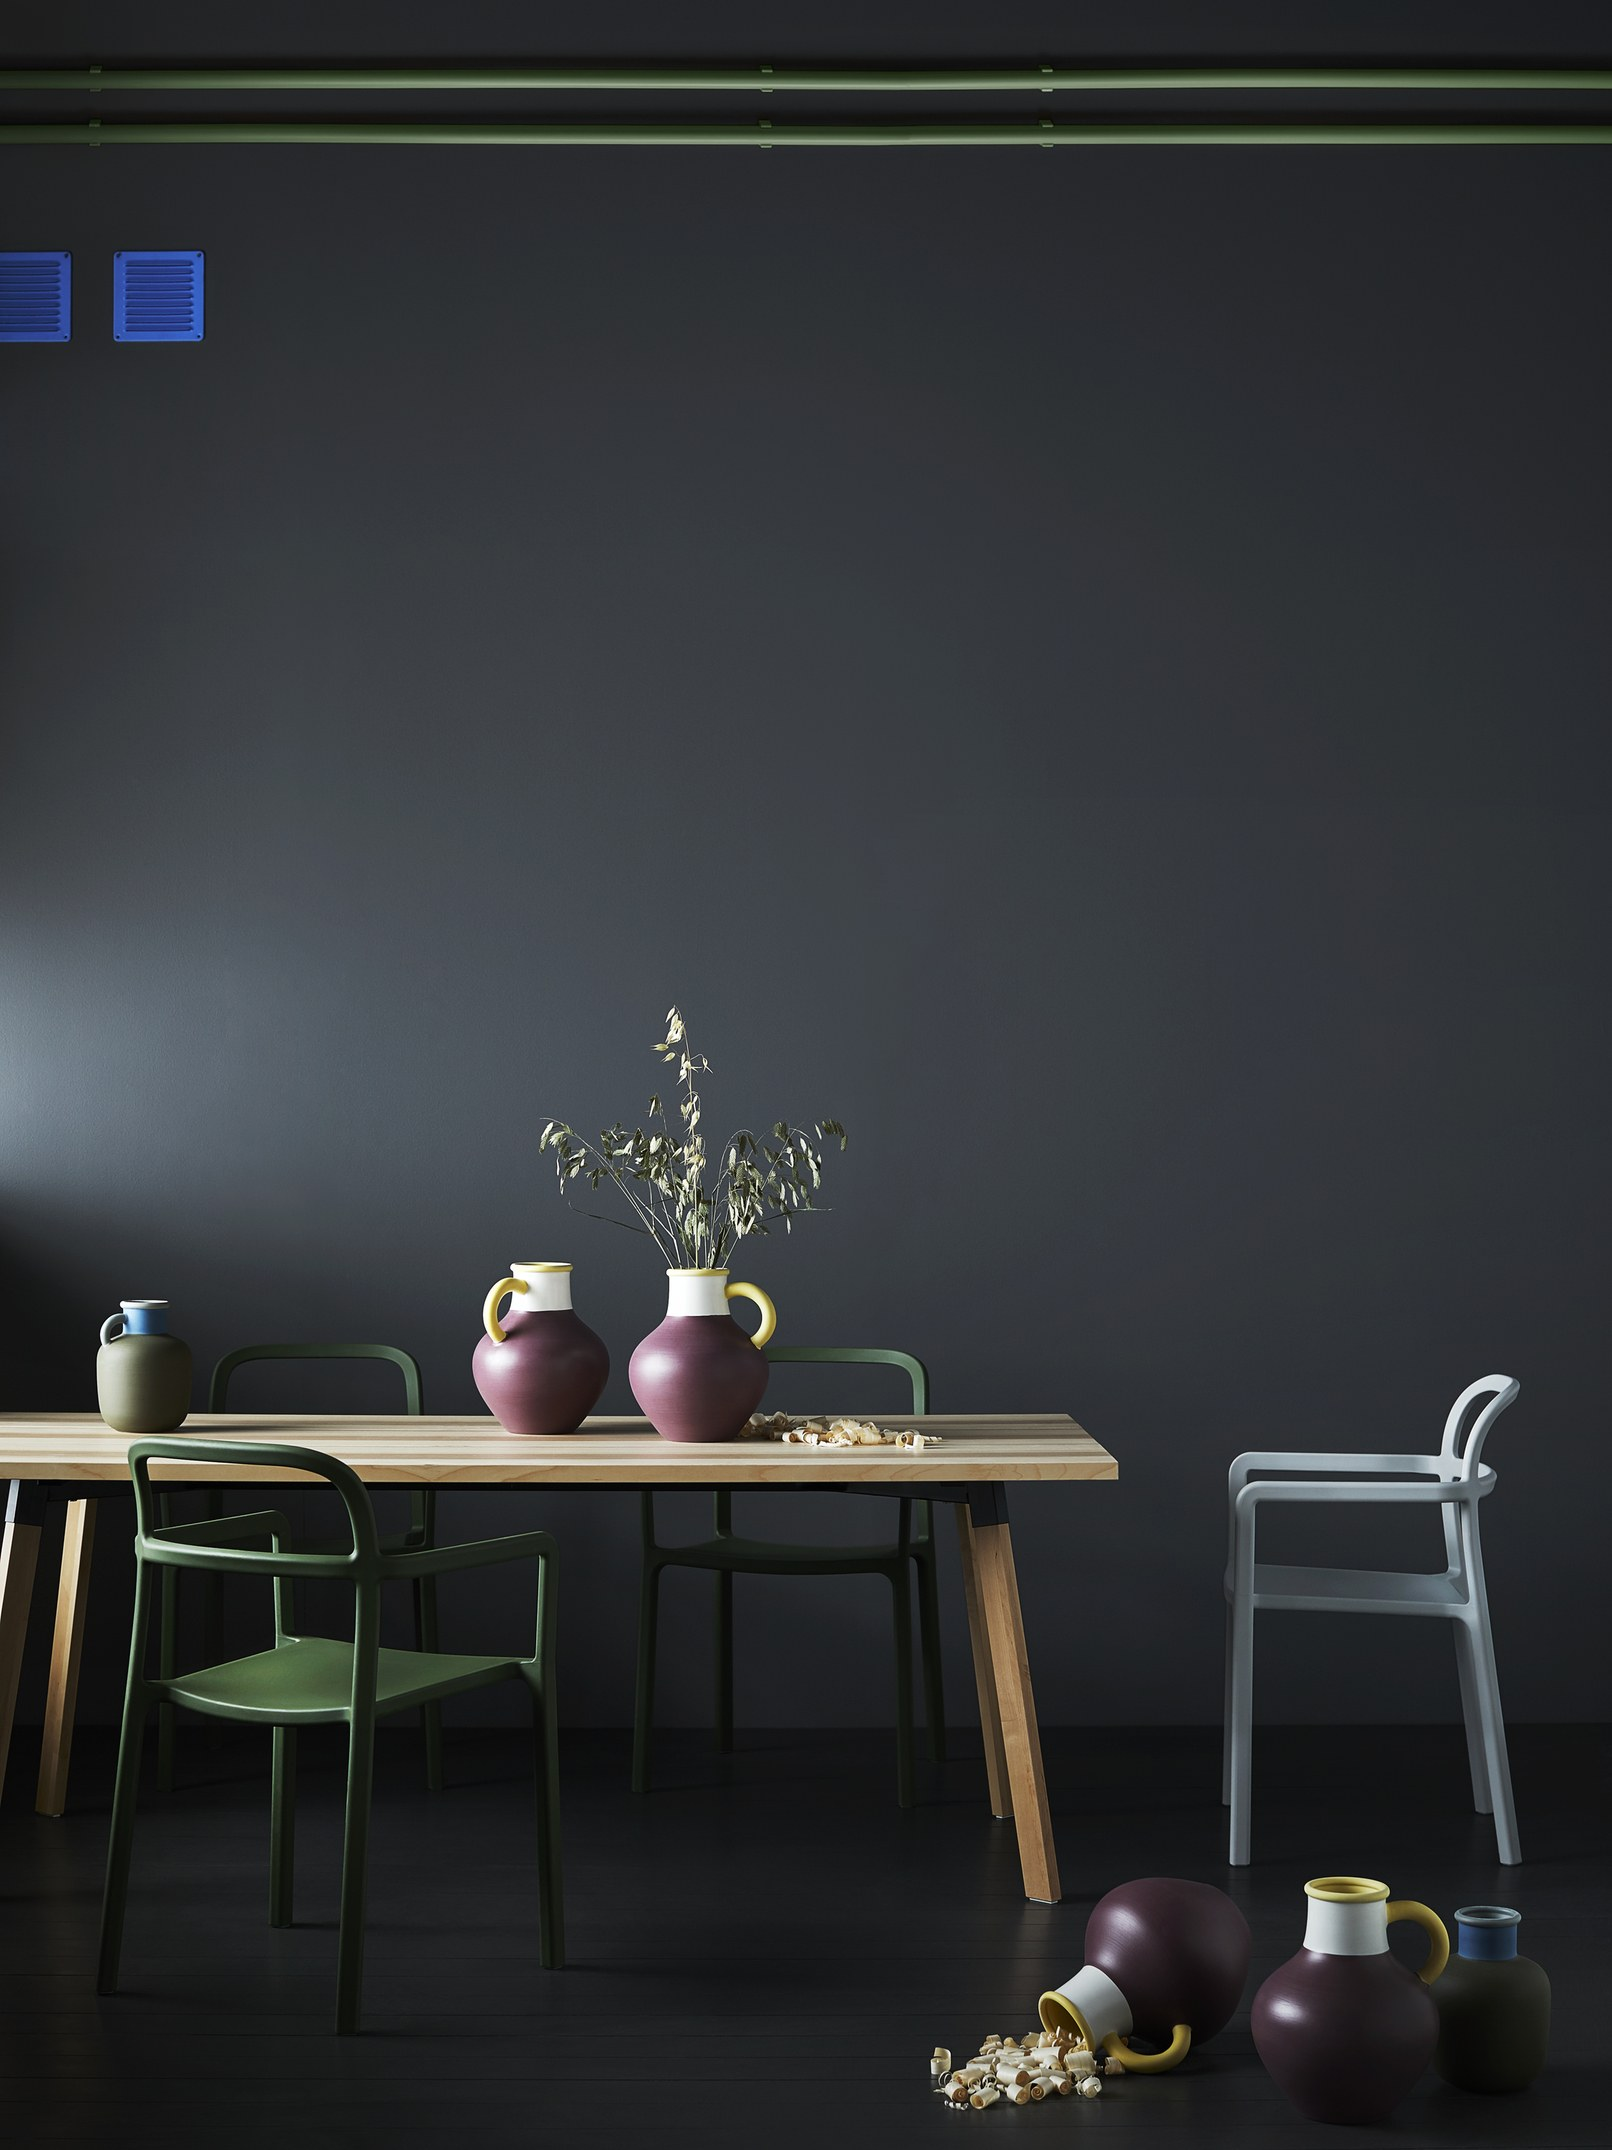 Admirable The 200 Ikea Dining Room Table That Looks Like 1000 Kitchn Download Free Architecture Designs Rallybritishbridgeorg